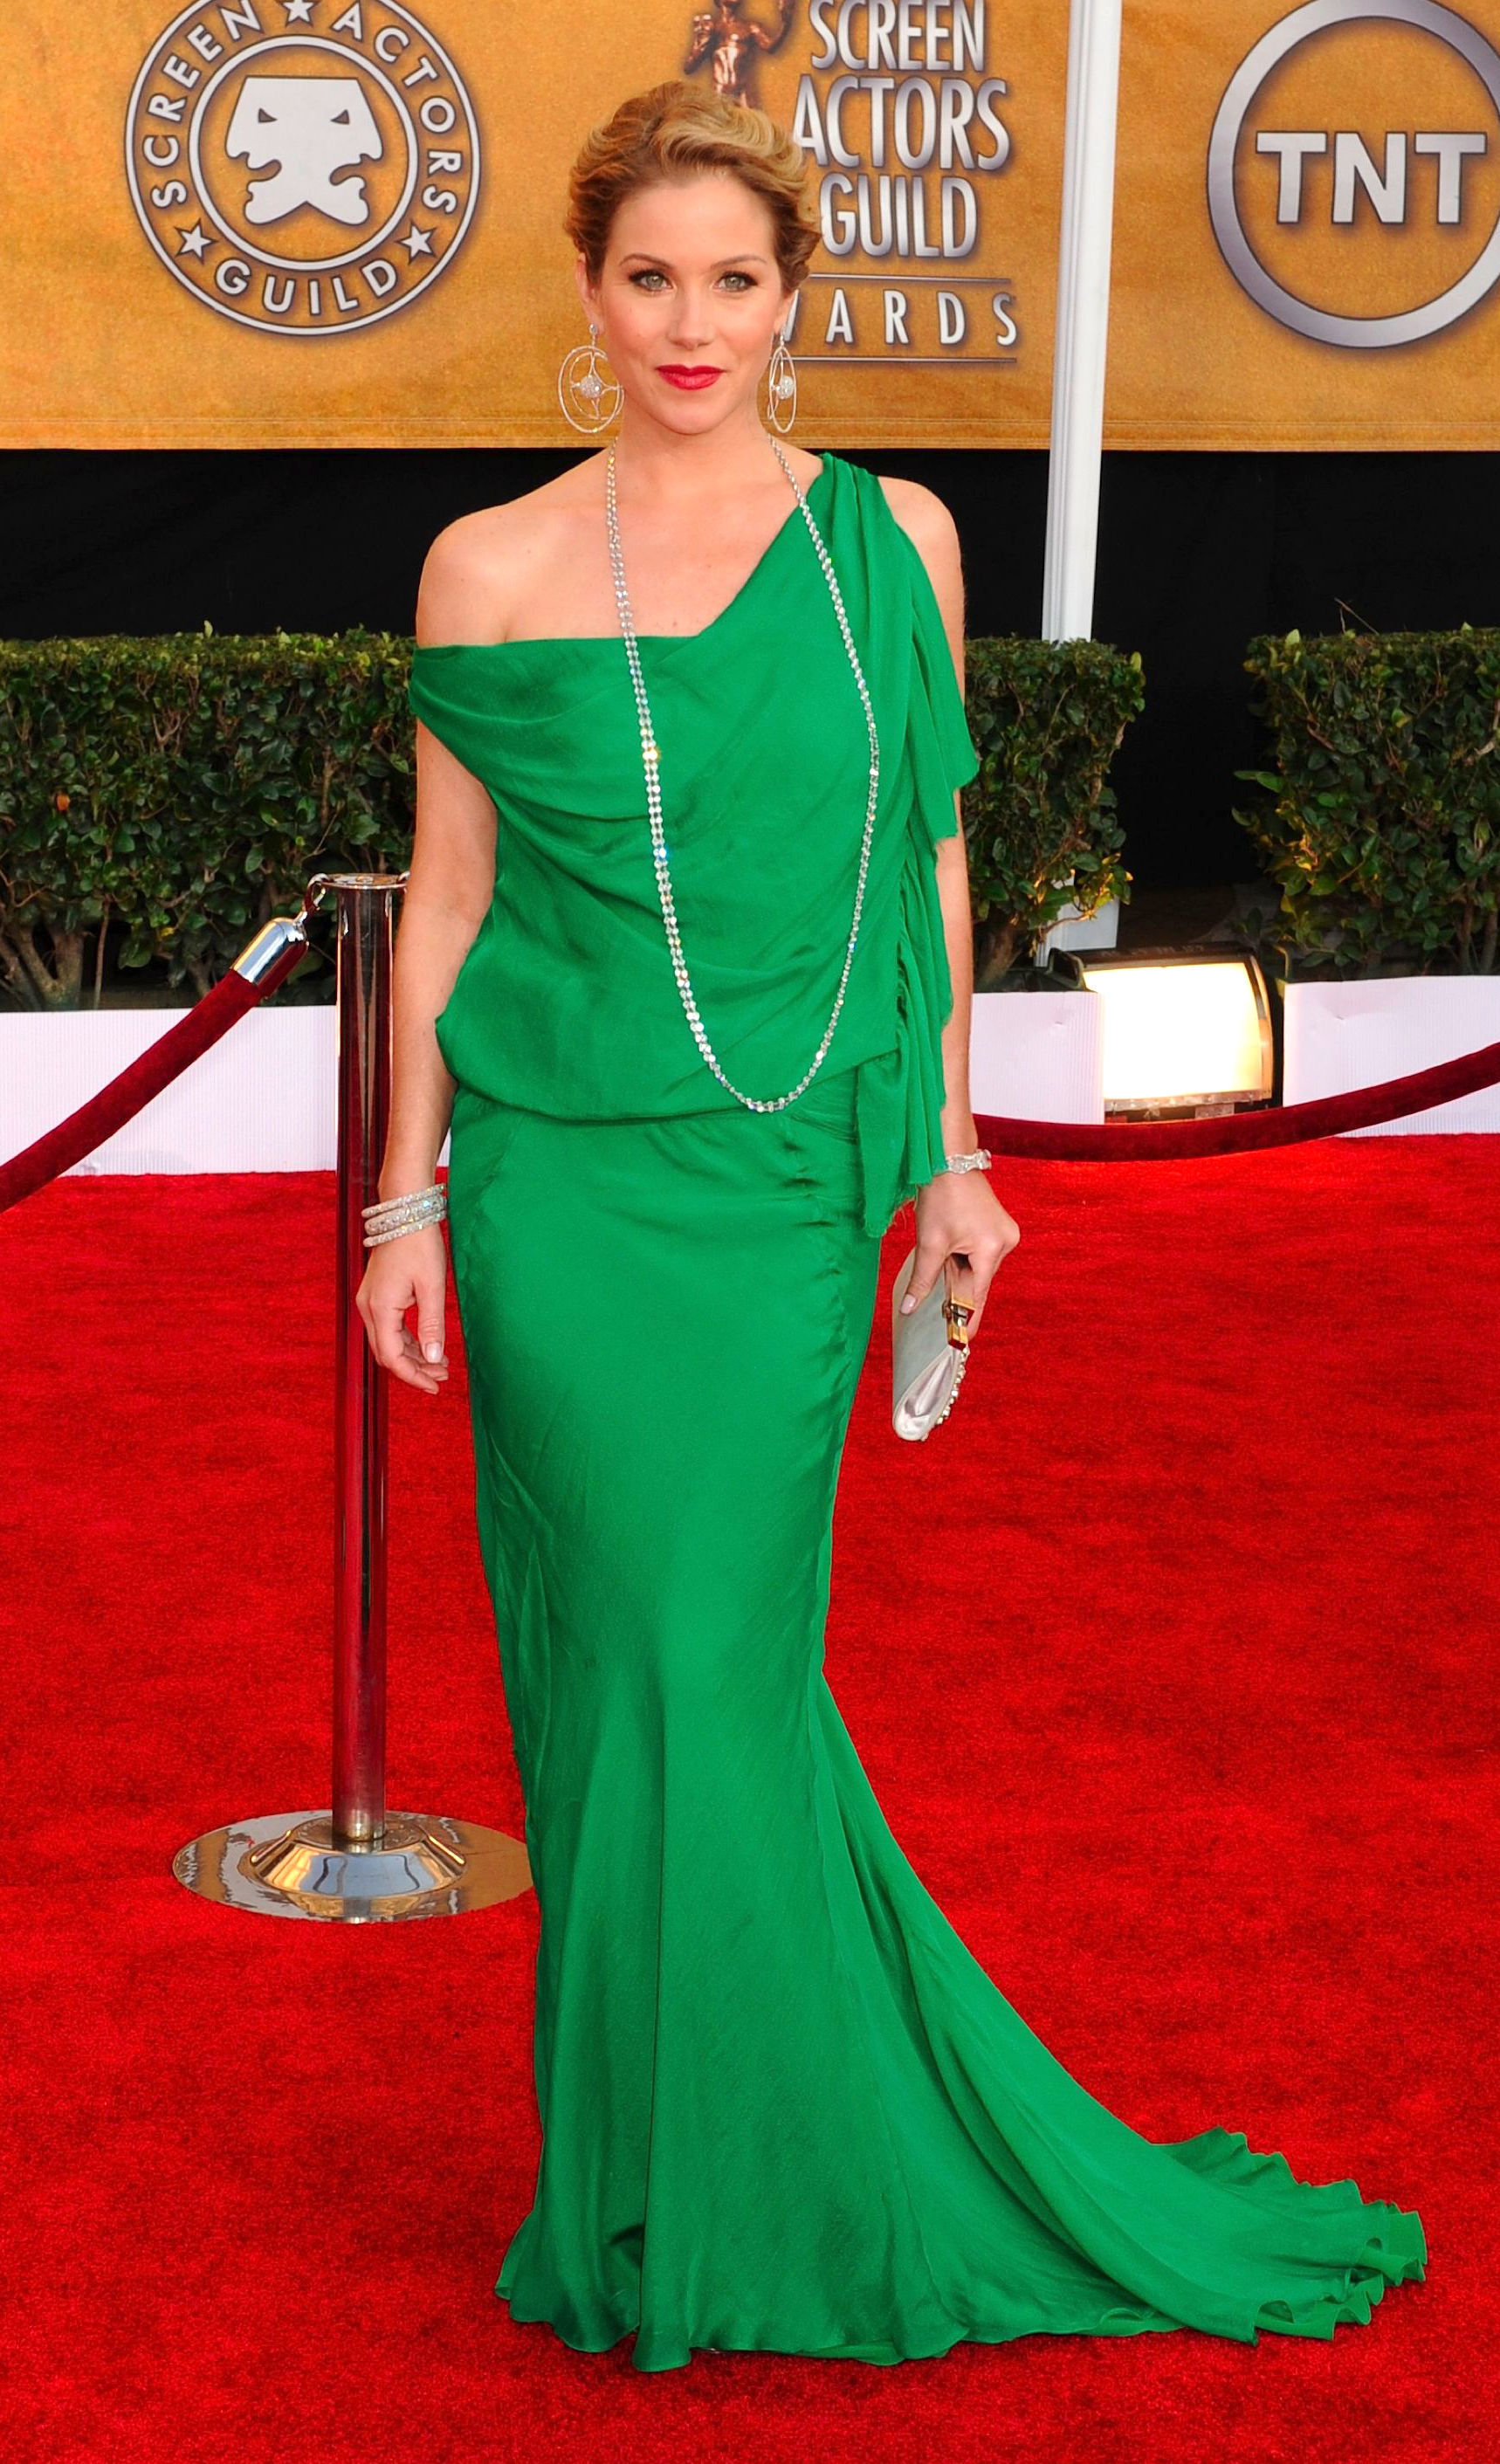 Christina Applegate attends the 15th Annual Screen Actors Guild Awards in Los Angeles on Jan. 25, 2009.